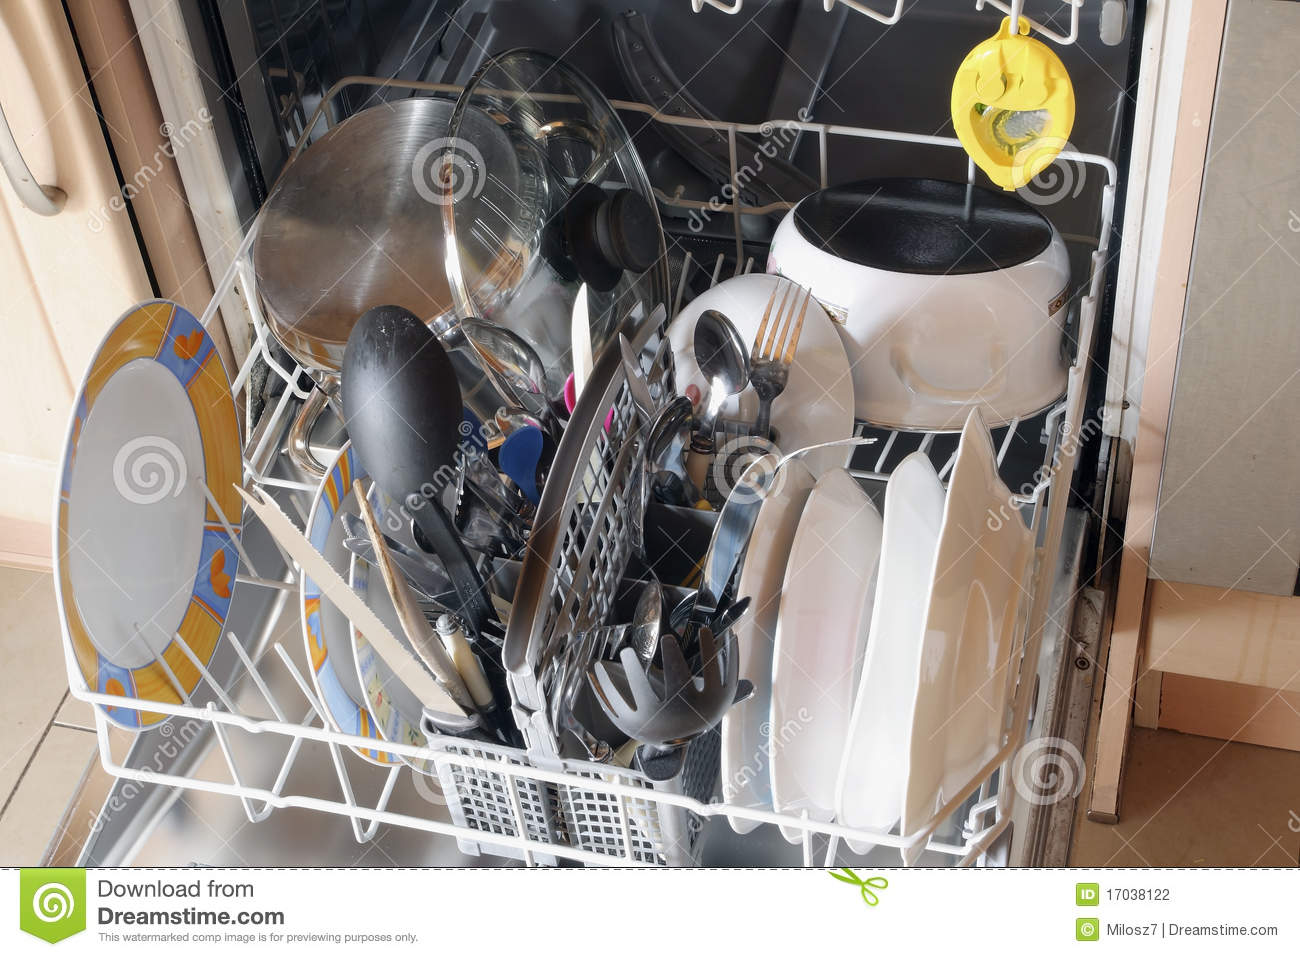 Dirty Dishes In Dishwasher Stock Photography - Image: 17038122